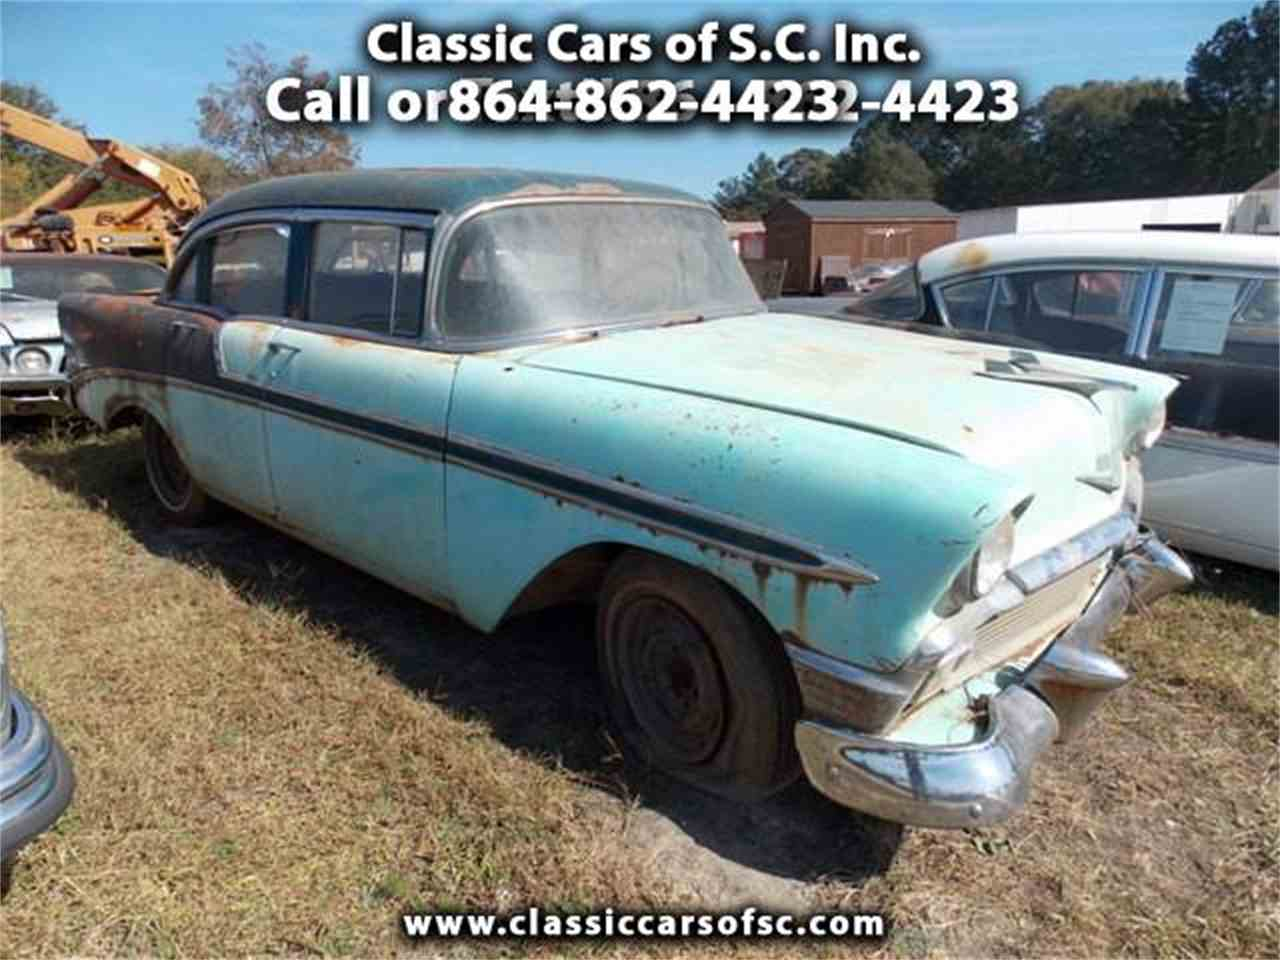 1956 chevrolet bel air for sale classic car liquidators - 1956 Chevrolet Bel Air For Sale Cc 918385